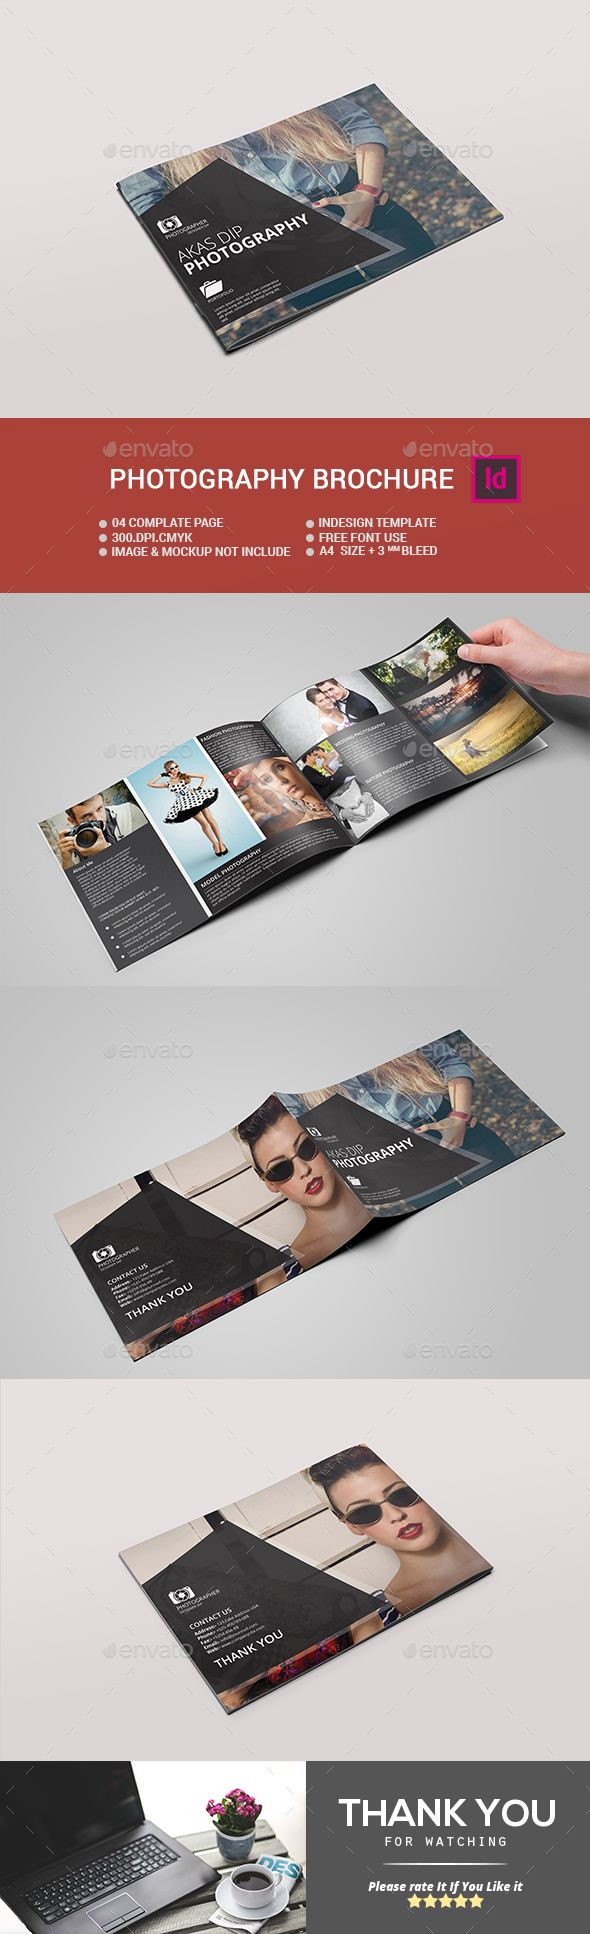 Landscape Photography Brochure | Photography brochure, Brochures and ...